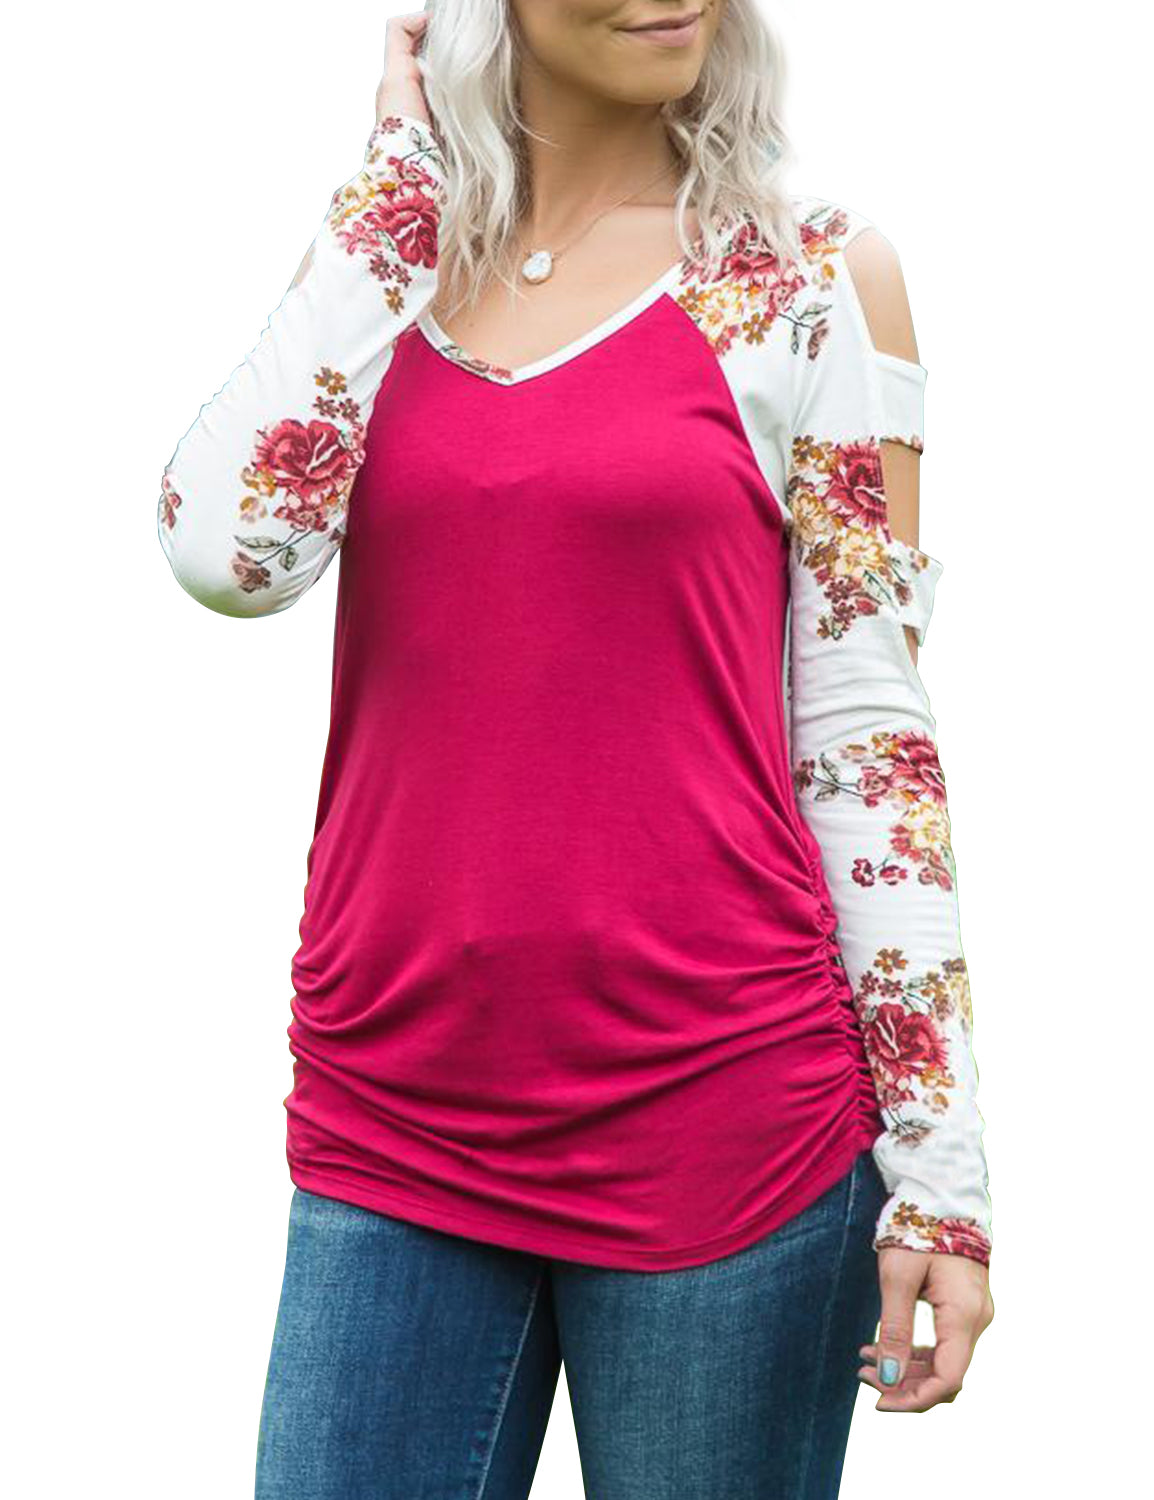 Floral Flower Printed Hollowed Out Shoulder Blouse - Blooming Jelly